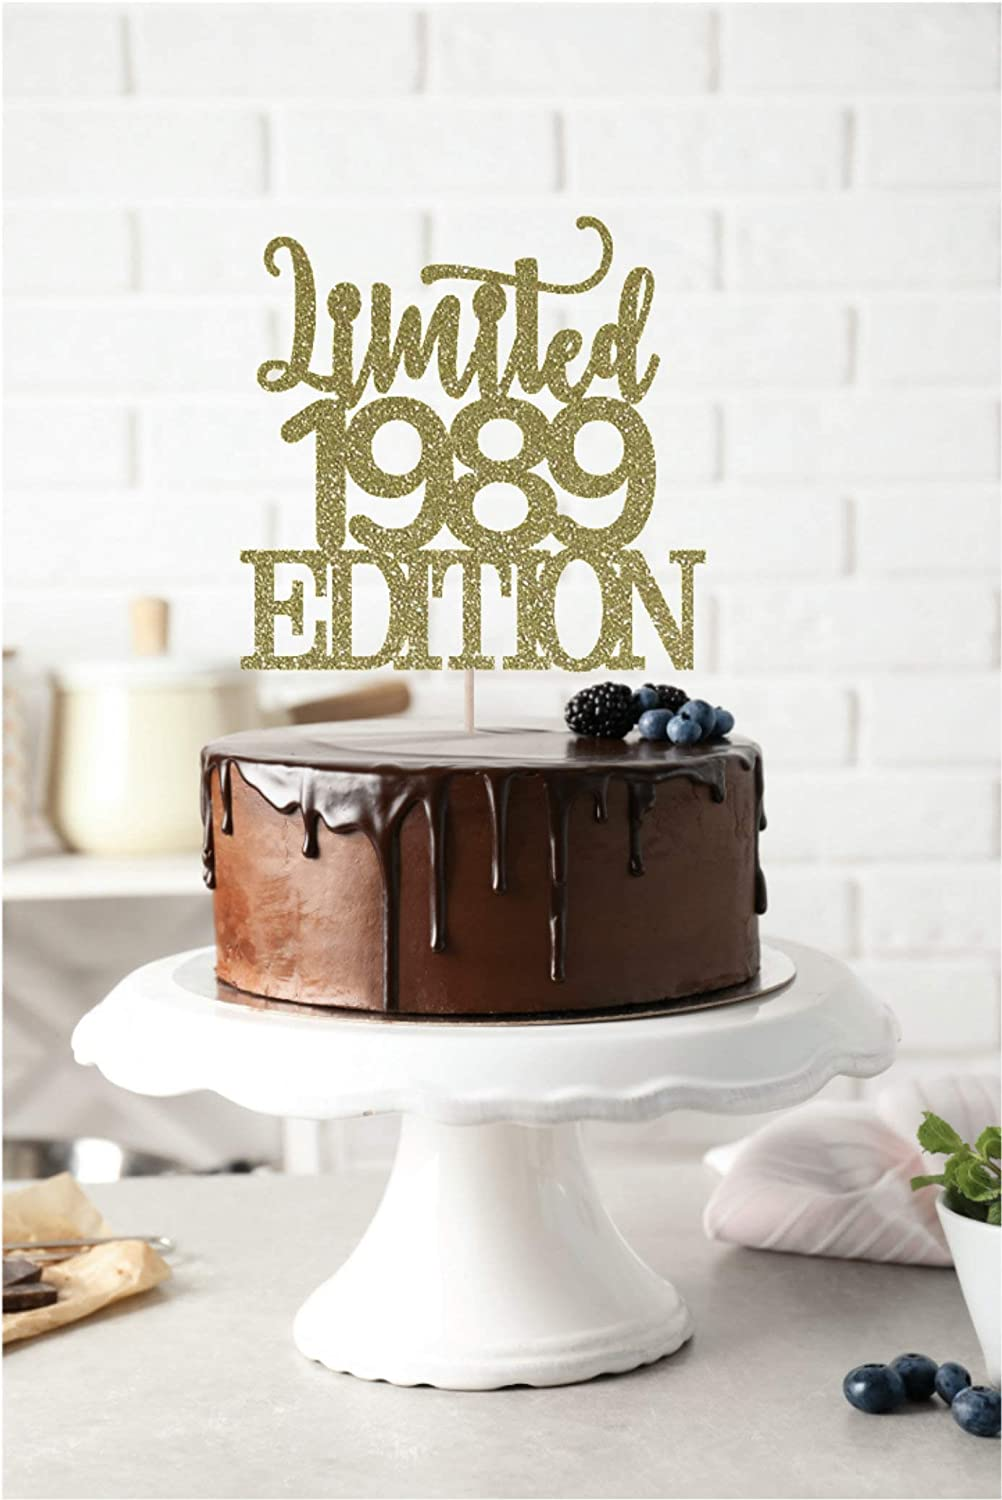 Limited 1989 Edition Cake Topper 30th Anniversary Topper 30 Cake Topper 30th Birthday Cake Topper